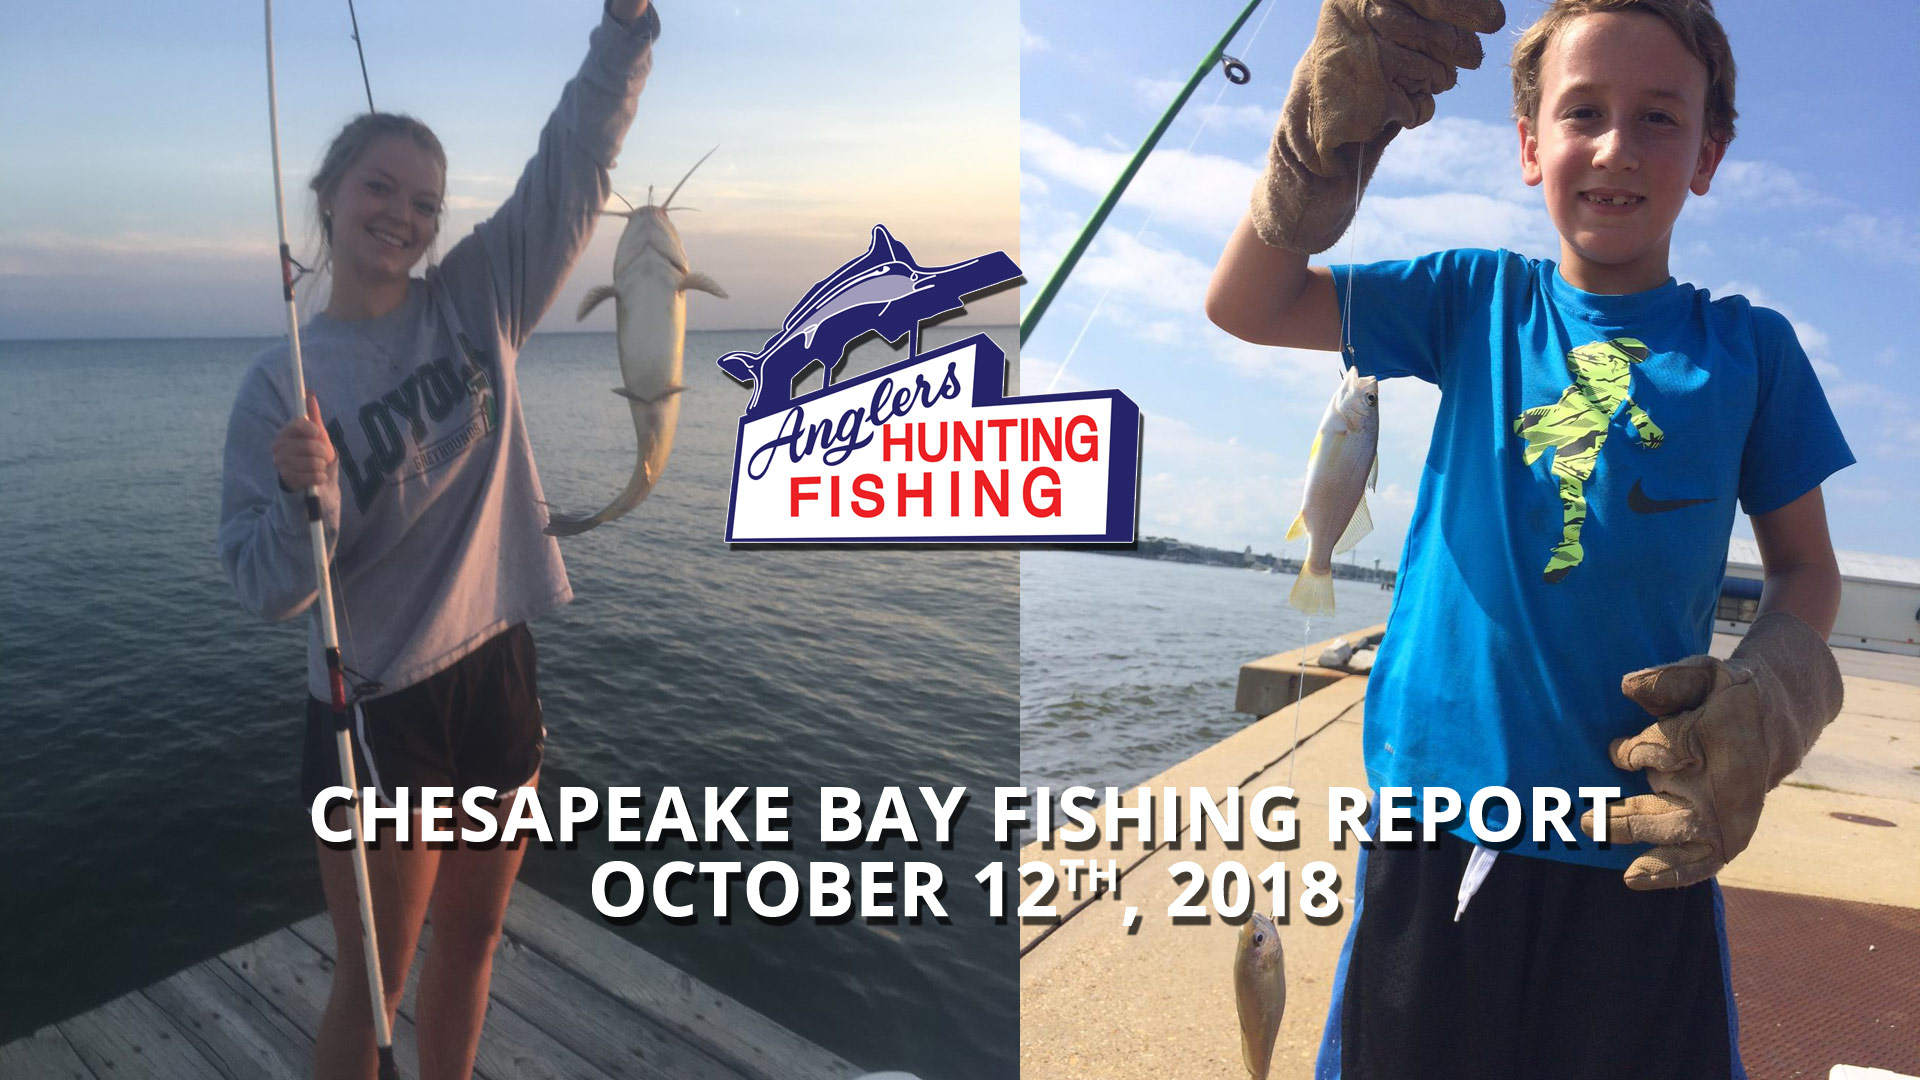 Chesapeake Bay Fishing Report - October 12th, 2018